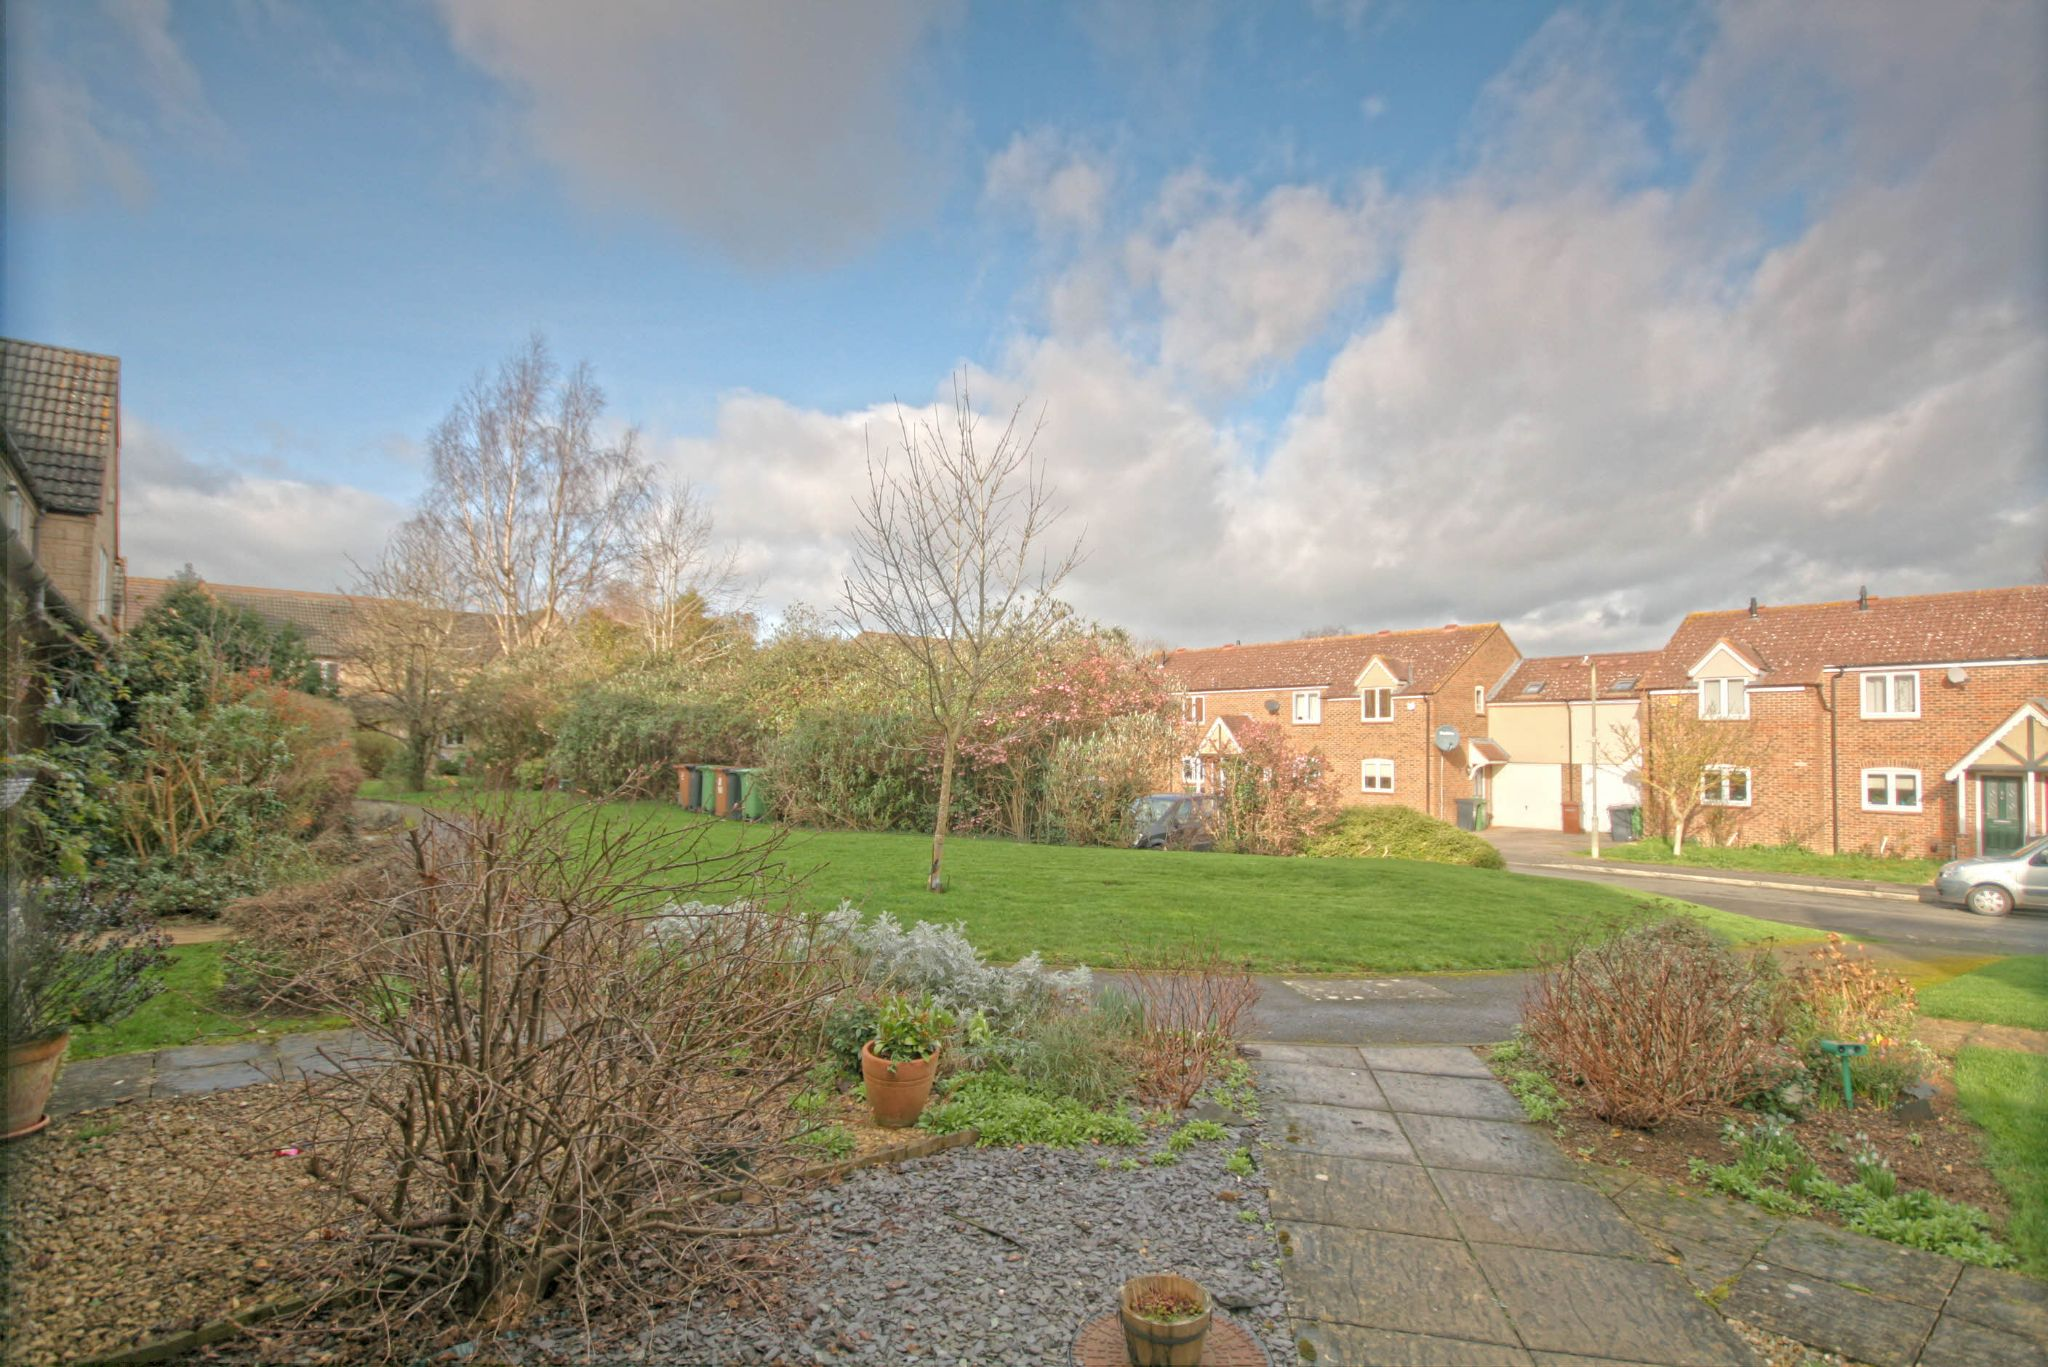 3 Bedroom End Terraced House For Sale - View across green from front door